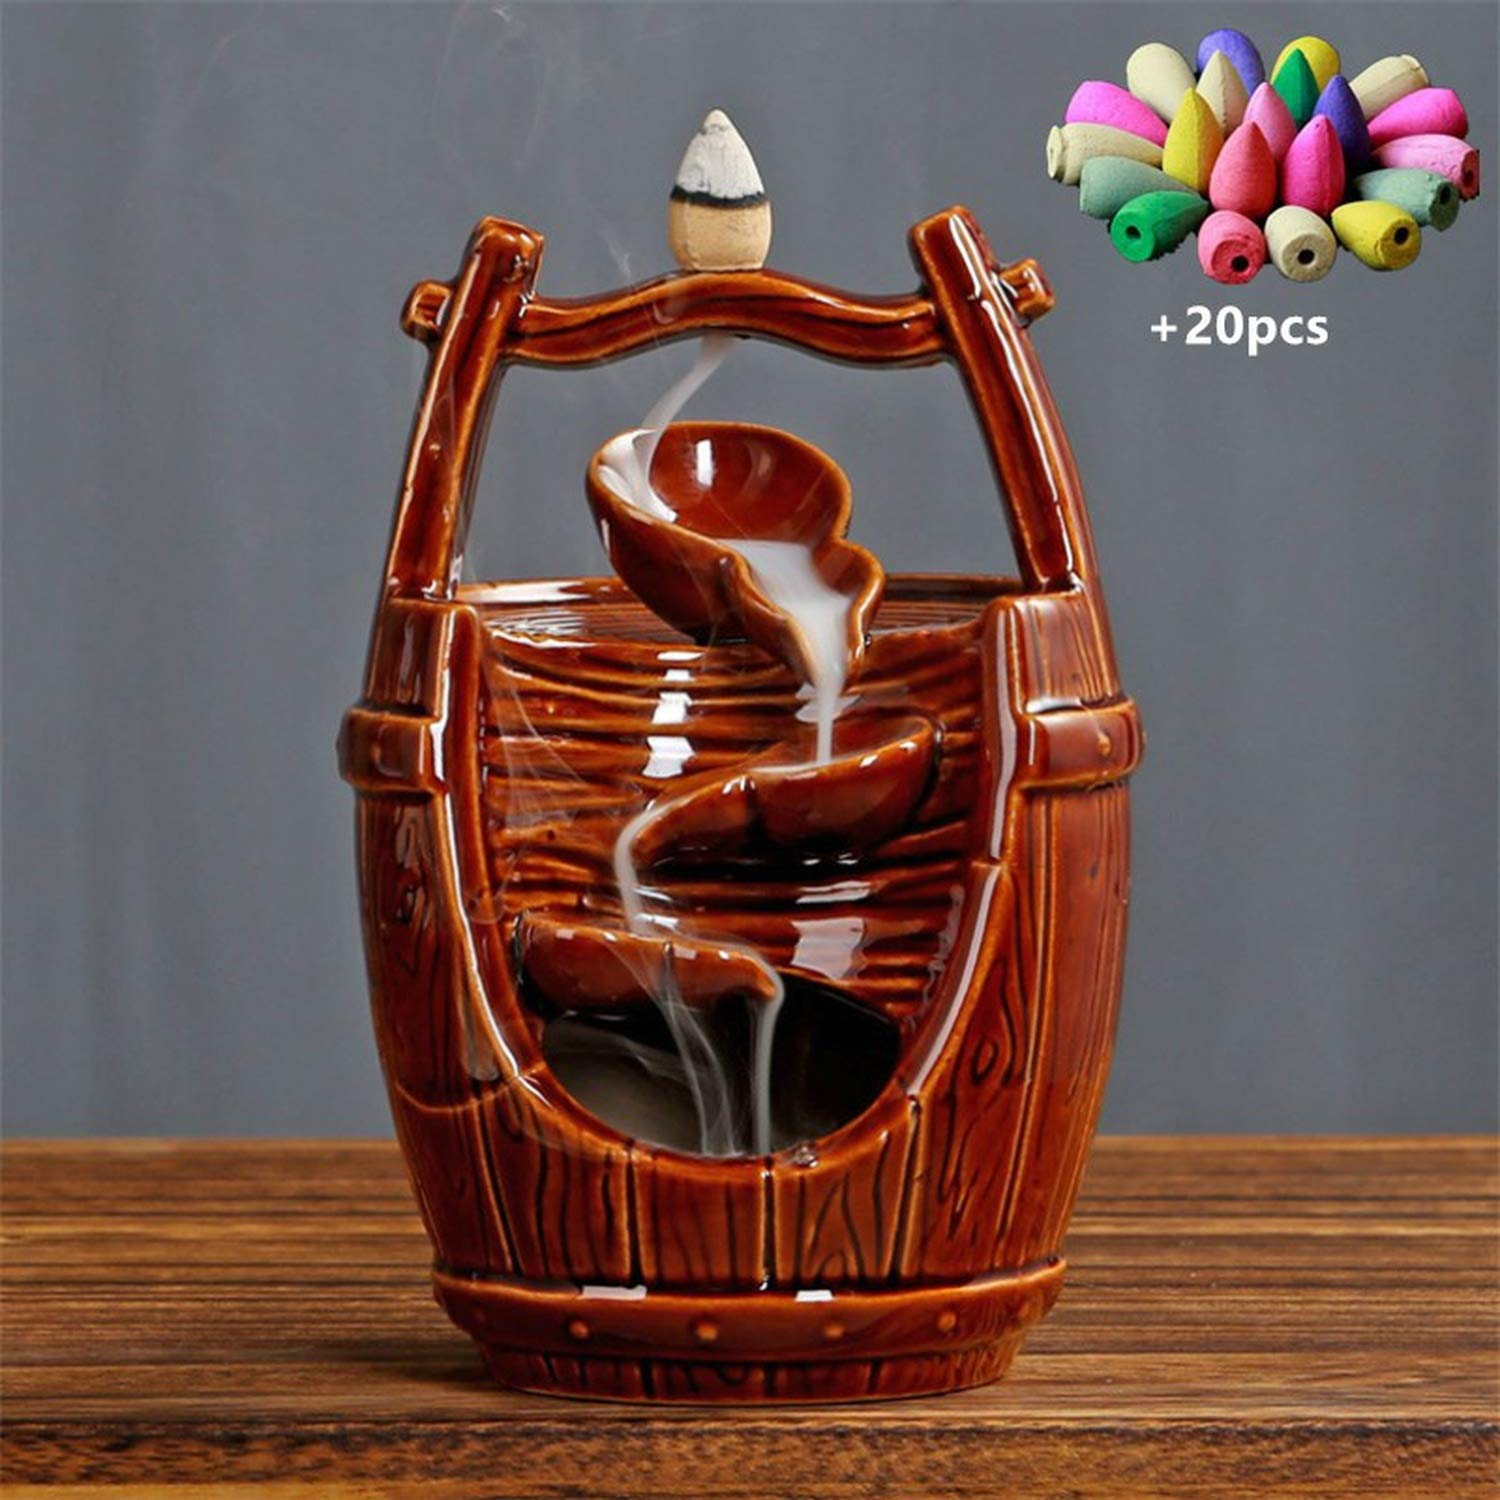 Ceramic Handicraft Ornaments Waterfall Backflow Incense Burner Home Office Decor Incense Censer Holder +20pcs Incense Cones,with 20pcs Mixed-B by Deep Palpitation incense holders (Image #3)